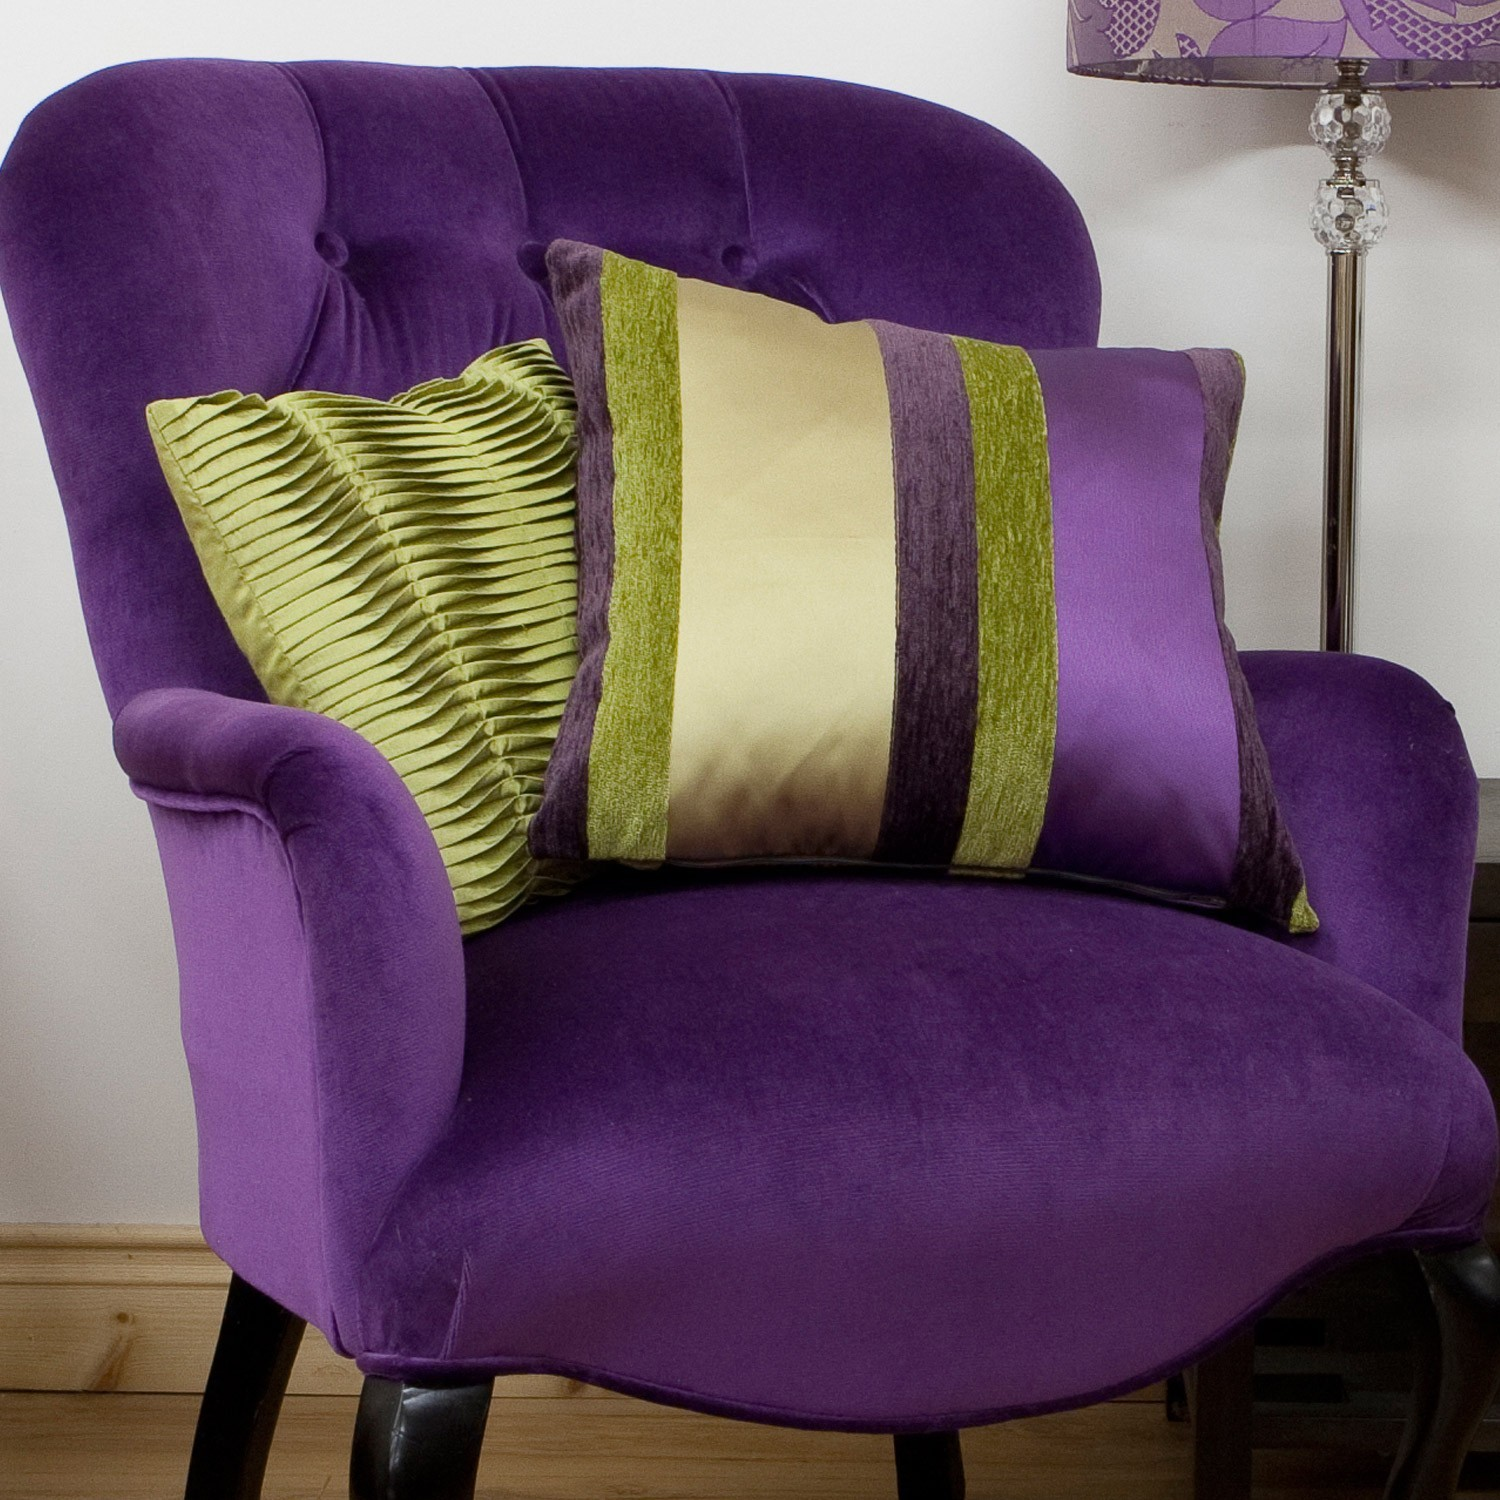 A purple chair This will go with my friends purple sofa & purple